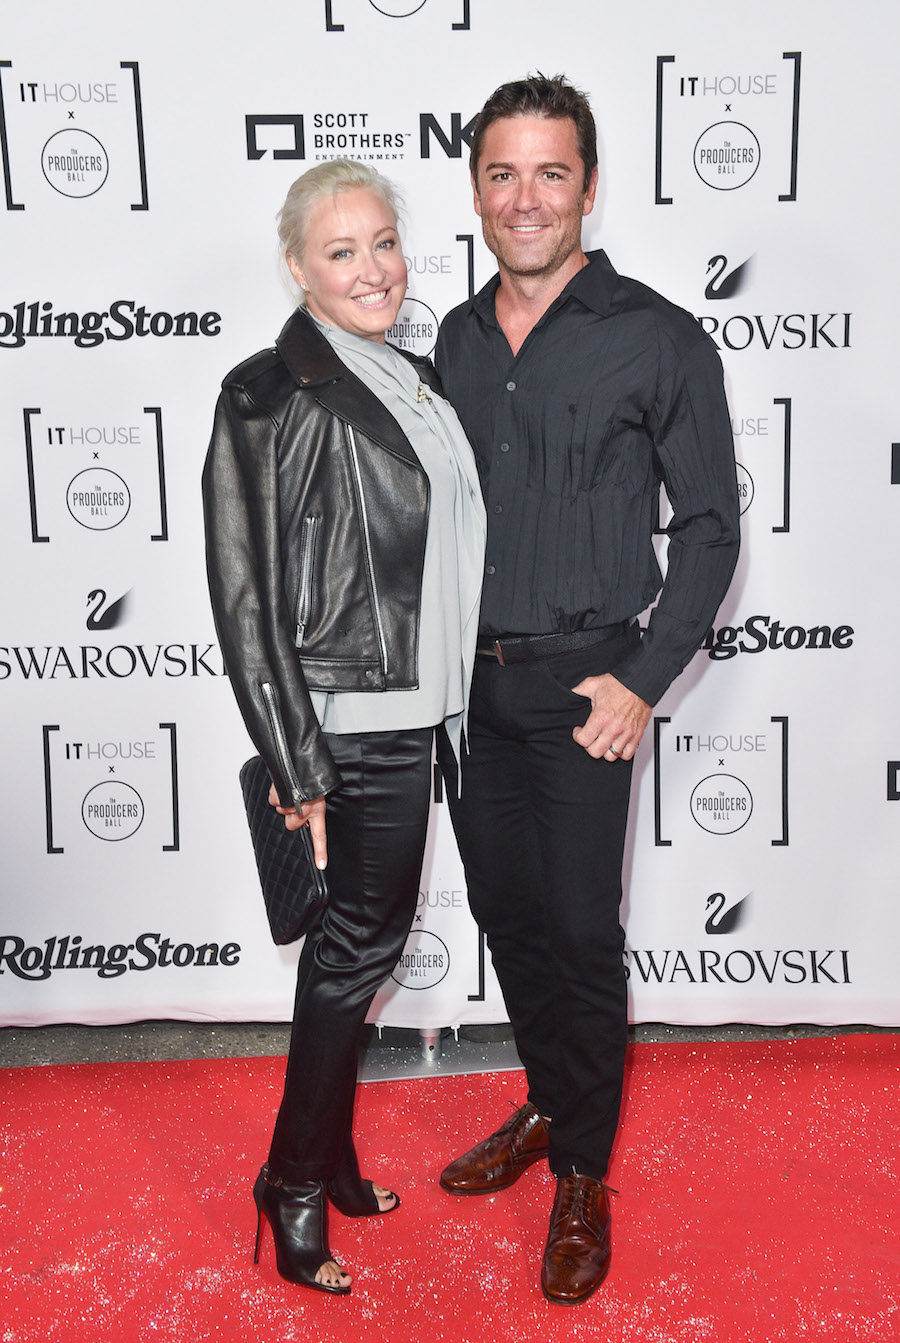 Shantelle and Yannick Bisson at the IT House x Producers Ball (Photo: Courtesy of NKPR) | View the VIBE